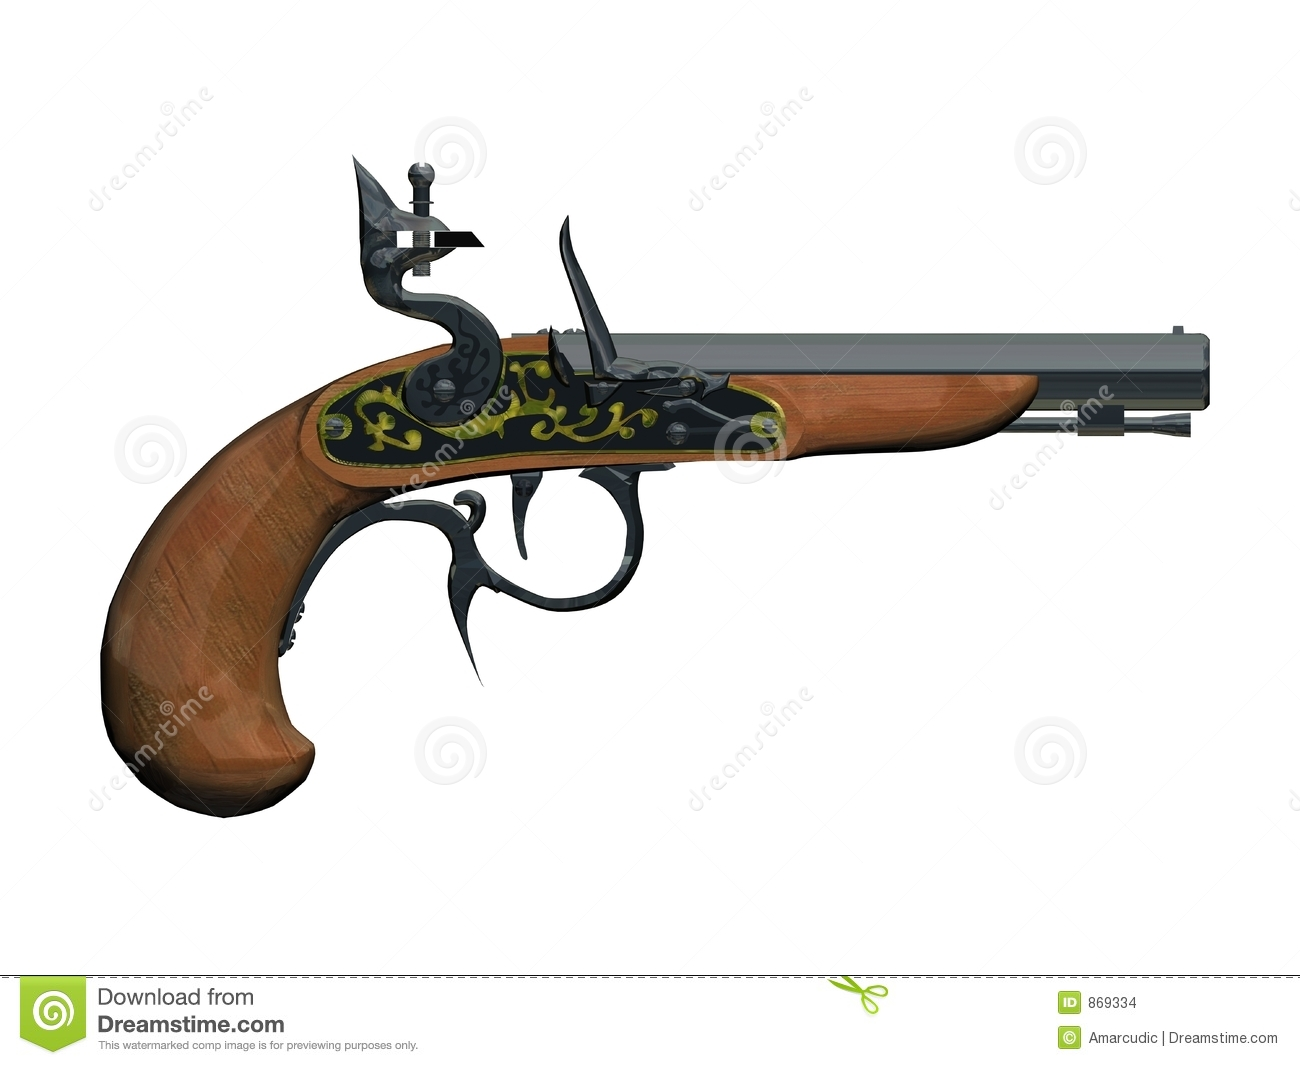 Pirates Gun Stock Images - Image: 869334